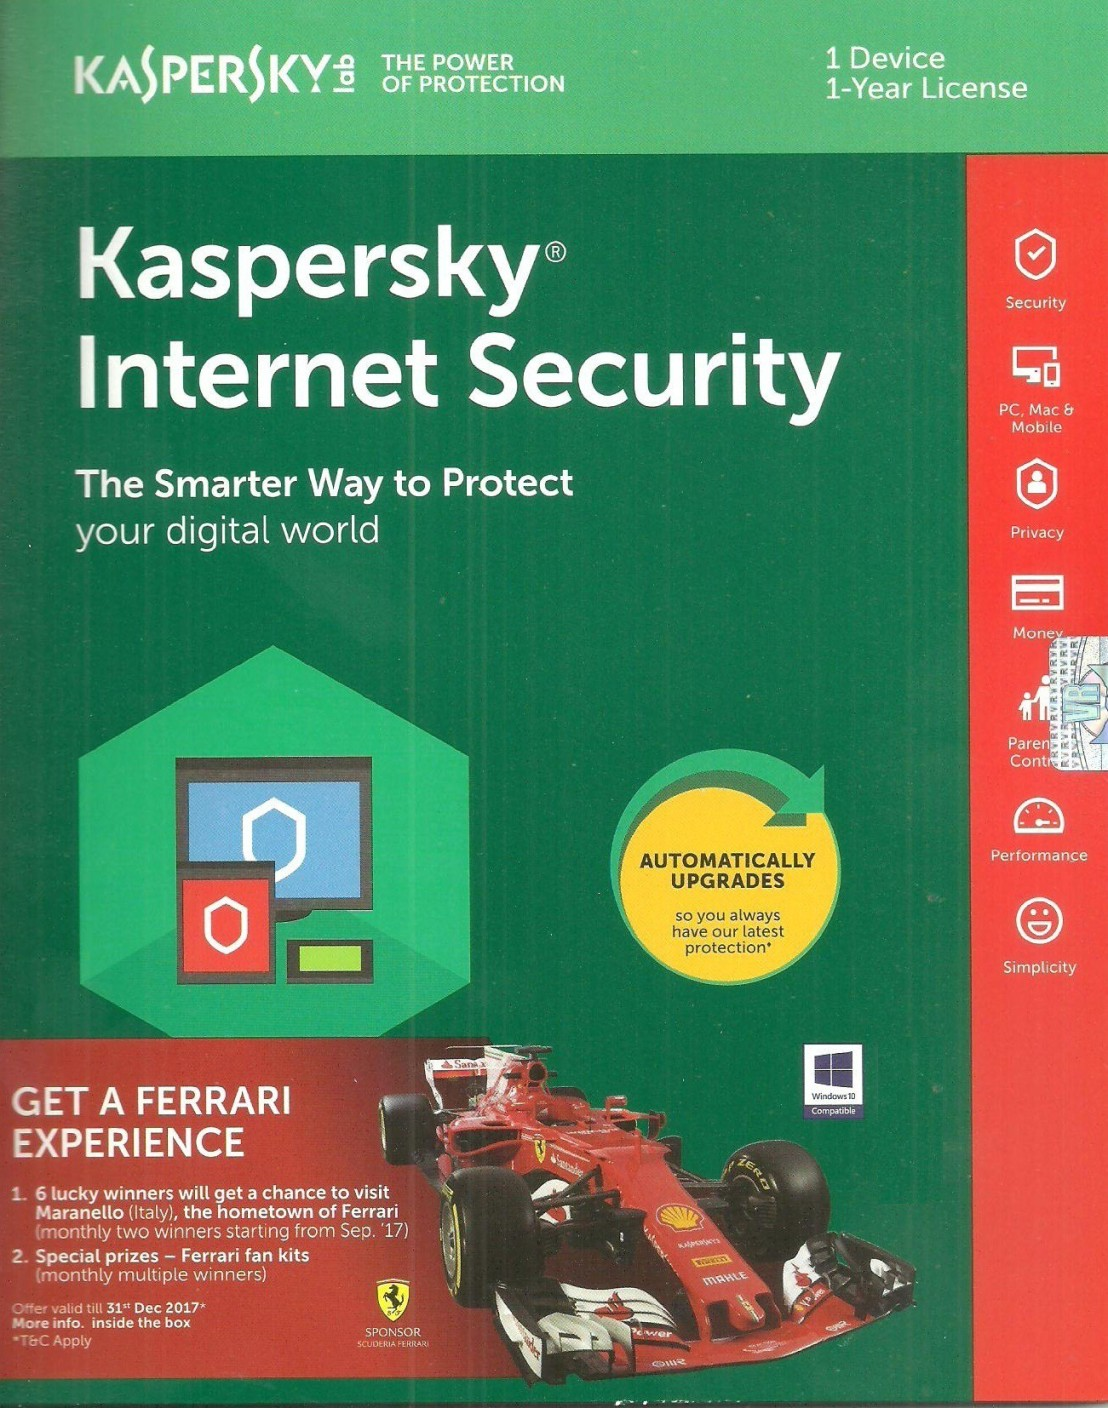 FREE License Key of Kaspersky Total Security 2019 … Kaspersky Internet Security (2019) New Working Act… Kaspersky Antivirus 2019 Free (365 Days) Product K… Cyberghost 7 Activation Key Leaked Free in 2019; AVG Internet Security 2019 Page Full of Serial Key… AVG Driver Updater 2019 Key Fixes 127,000+ drivers